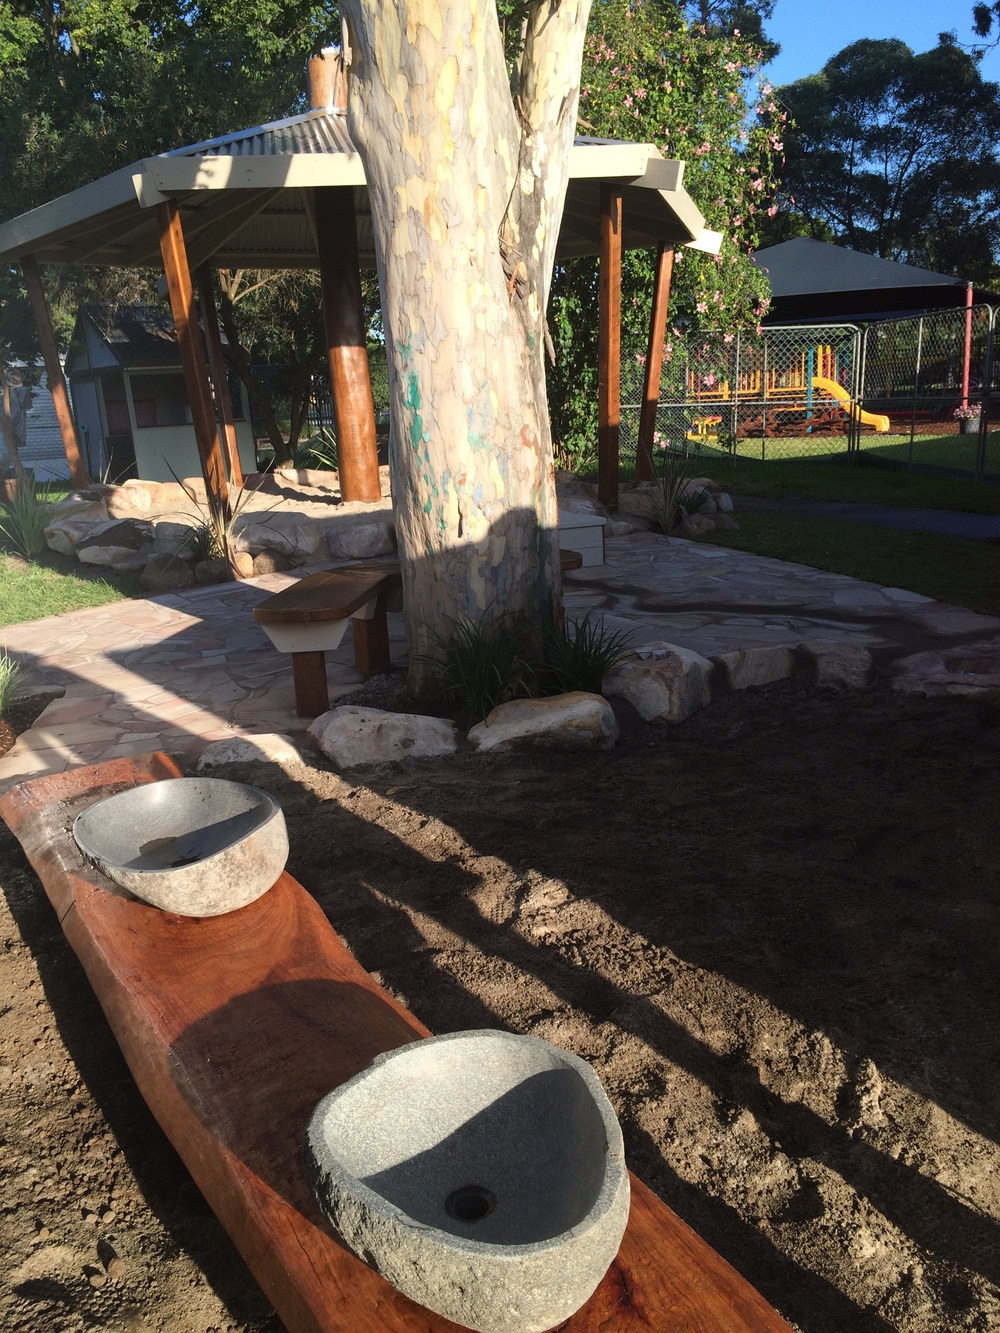 Looking back now from the Mud-pit  to the Water Course and arrive at the transformed Sand-Pit. Look at the beautiful stone bowl with drainage into the mud-pit and seating for adults and children alike